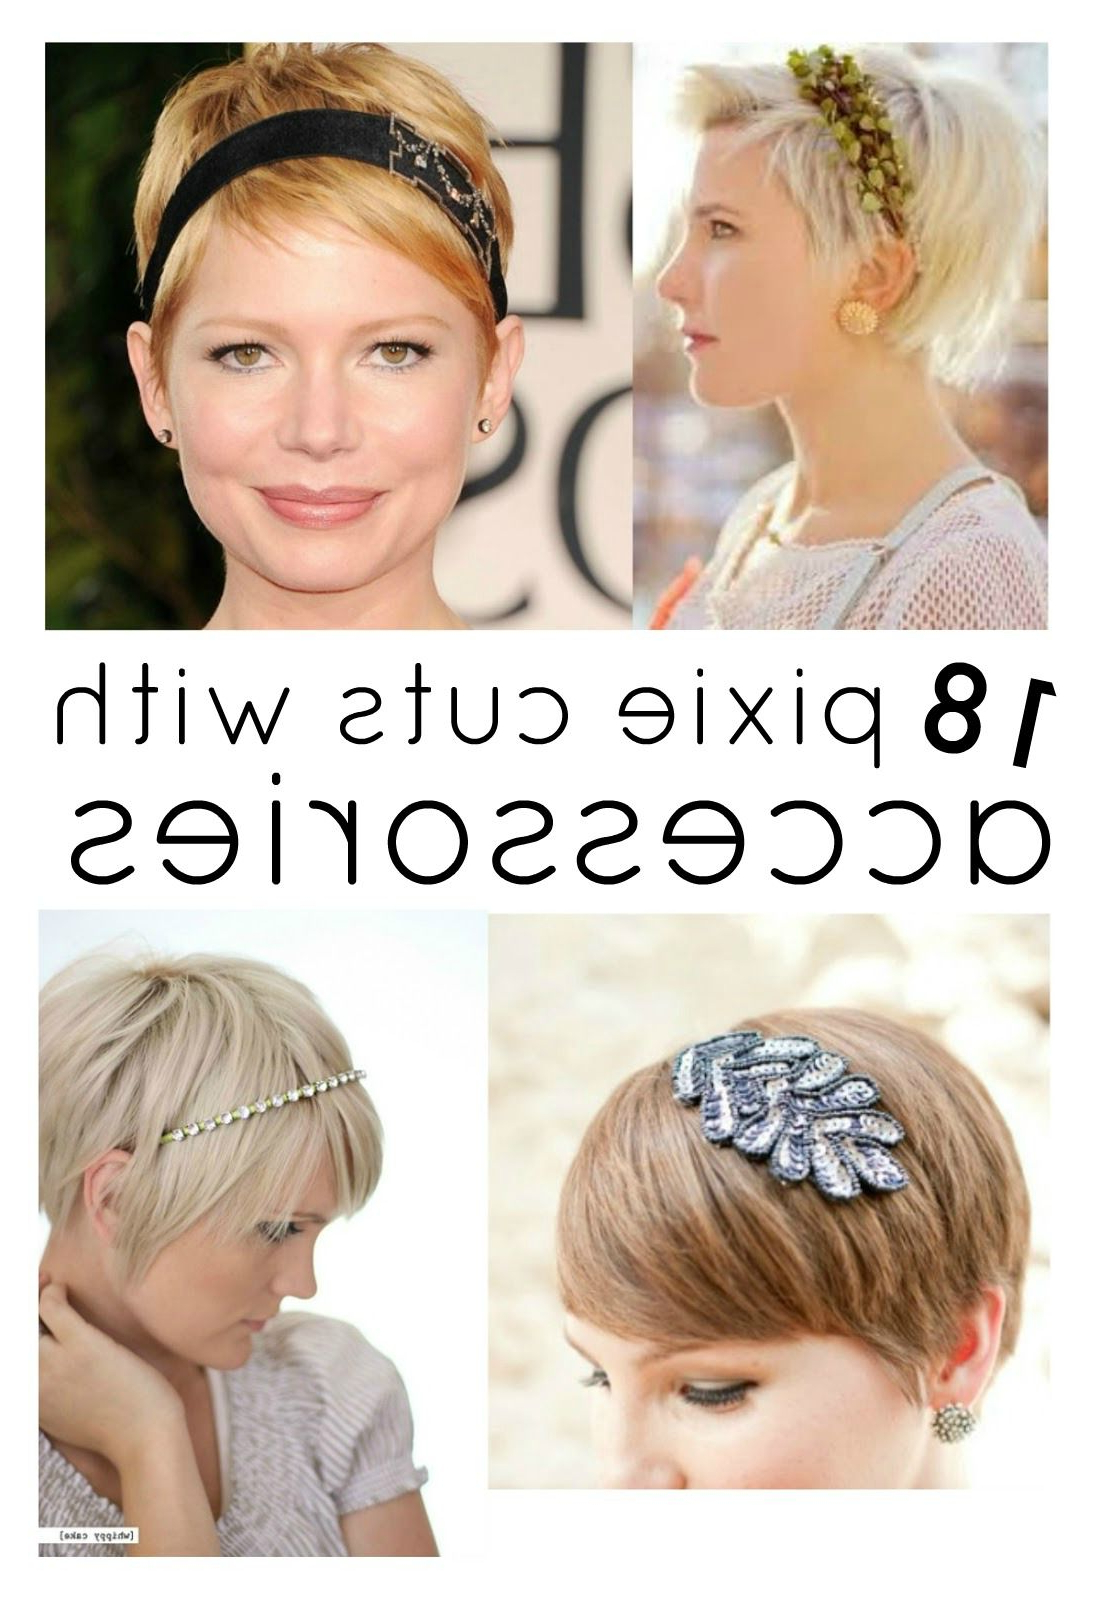 A Beautiful Little Life: Perfect Pixie Haircuts Part 3: 18 Pixie Intended For Short Hairstyles With Headbands (Gallery 21 of 25)